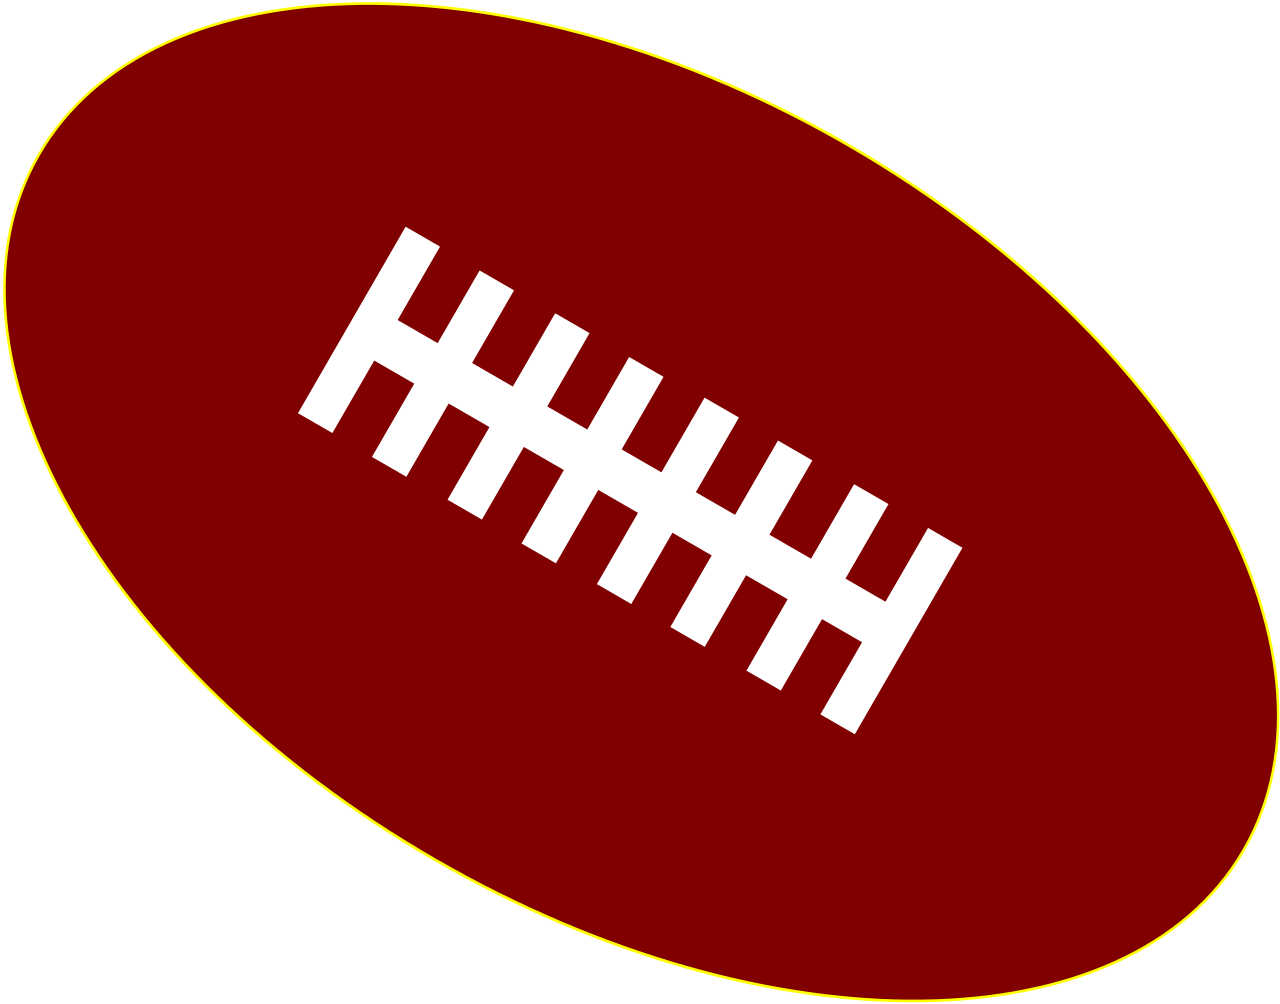 American football referee clipart vector library download File:American Football ball.svg - Wikipedia vector library download